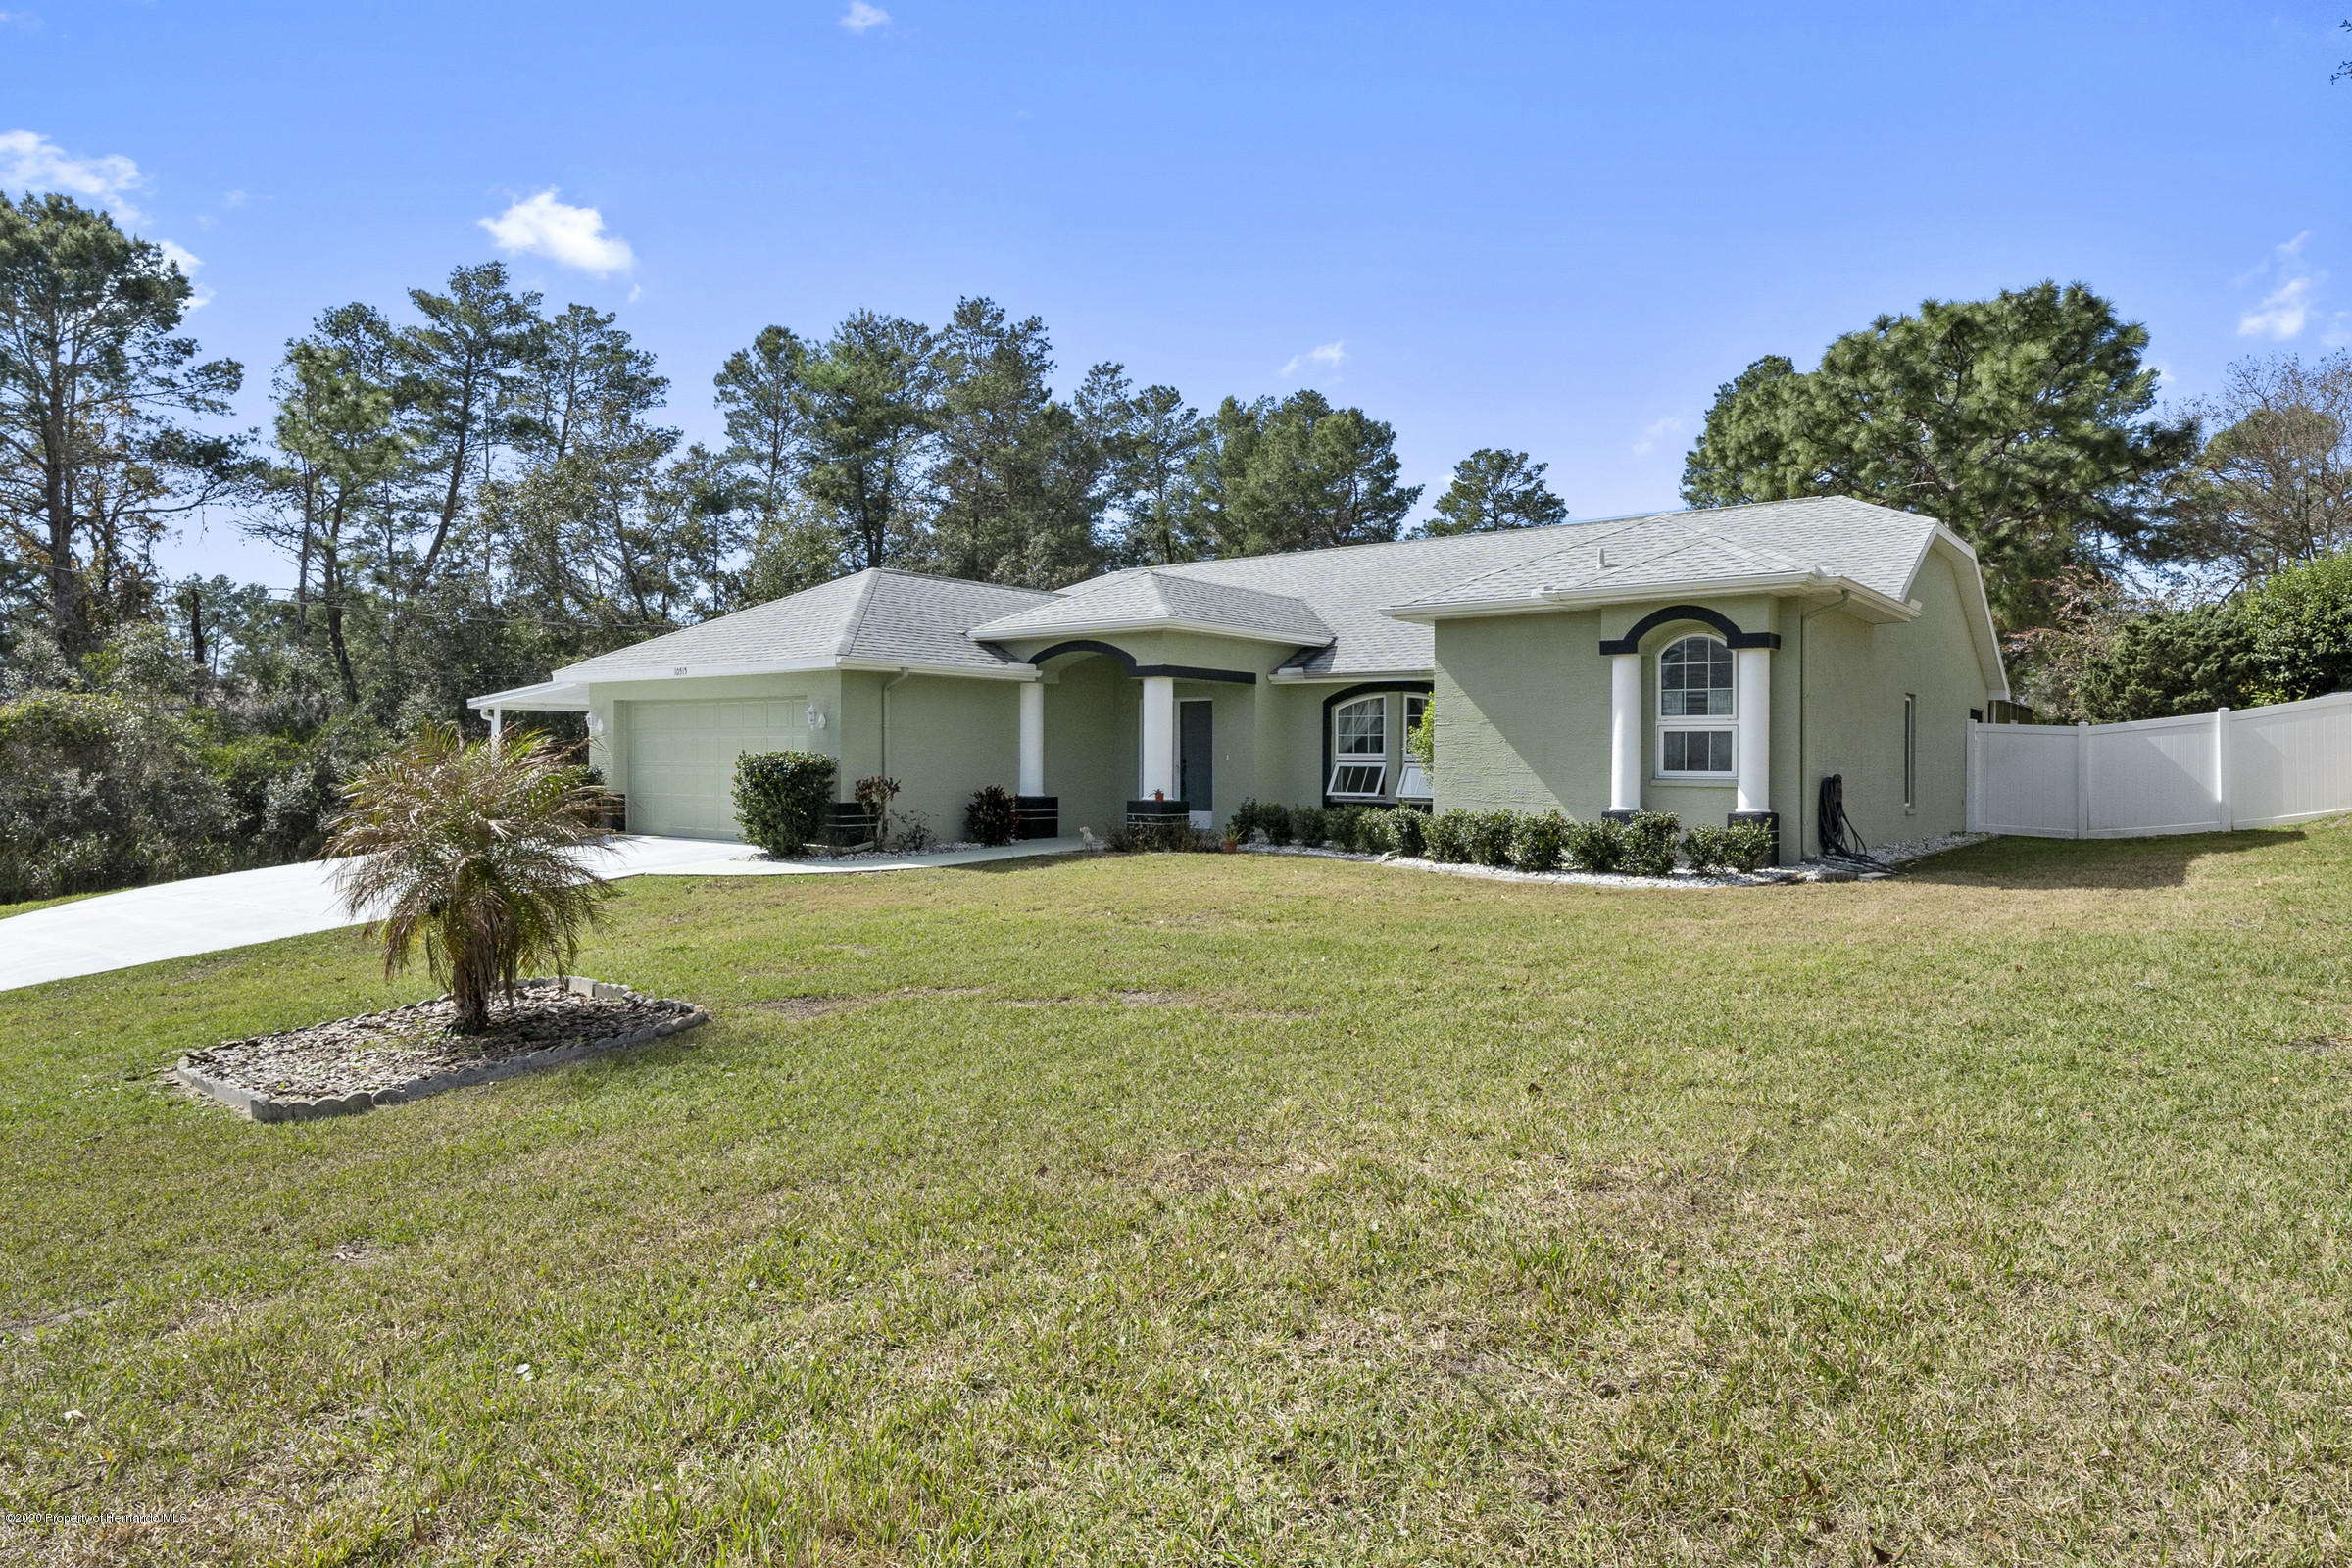 Details for 10515 Noddy Tern Road, Weeki Wachee, FL 34613